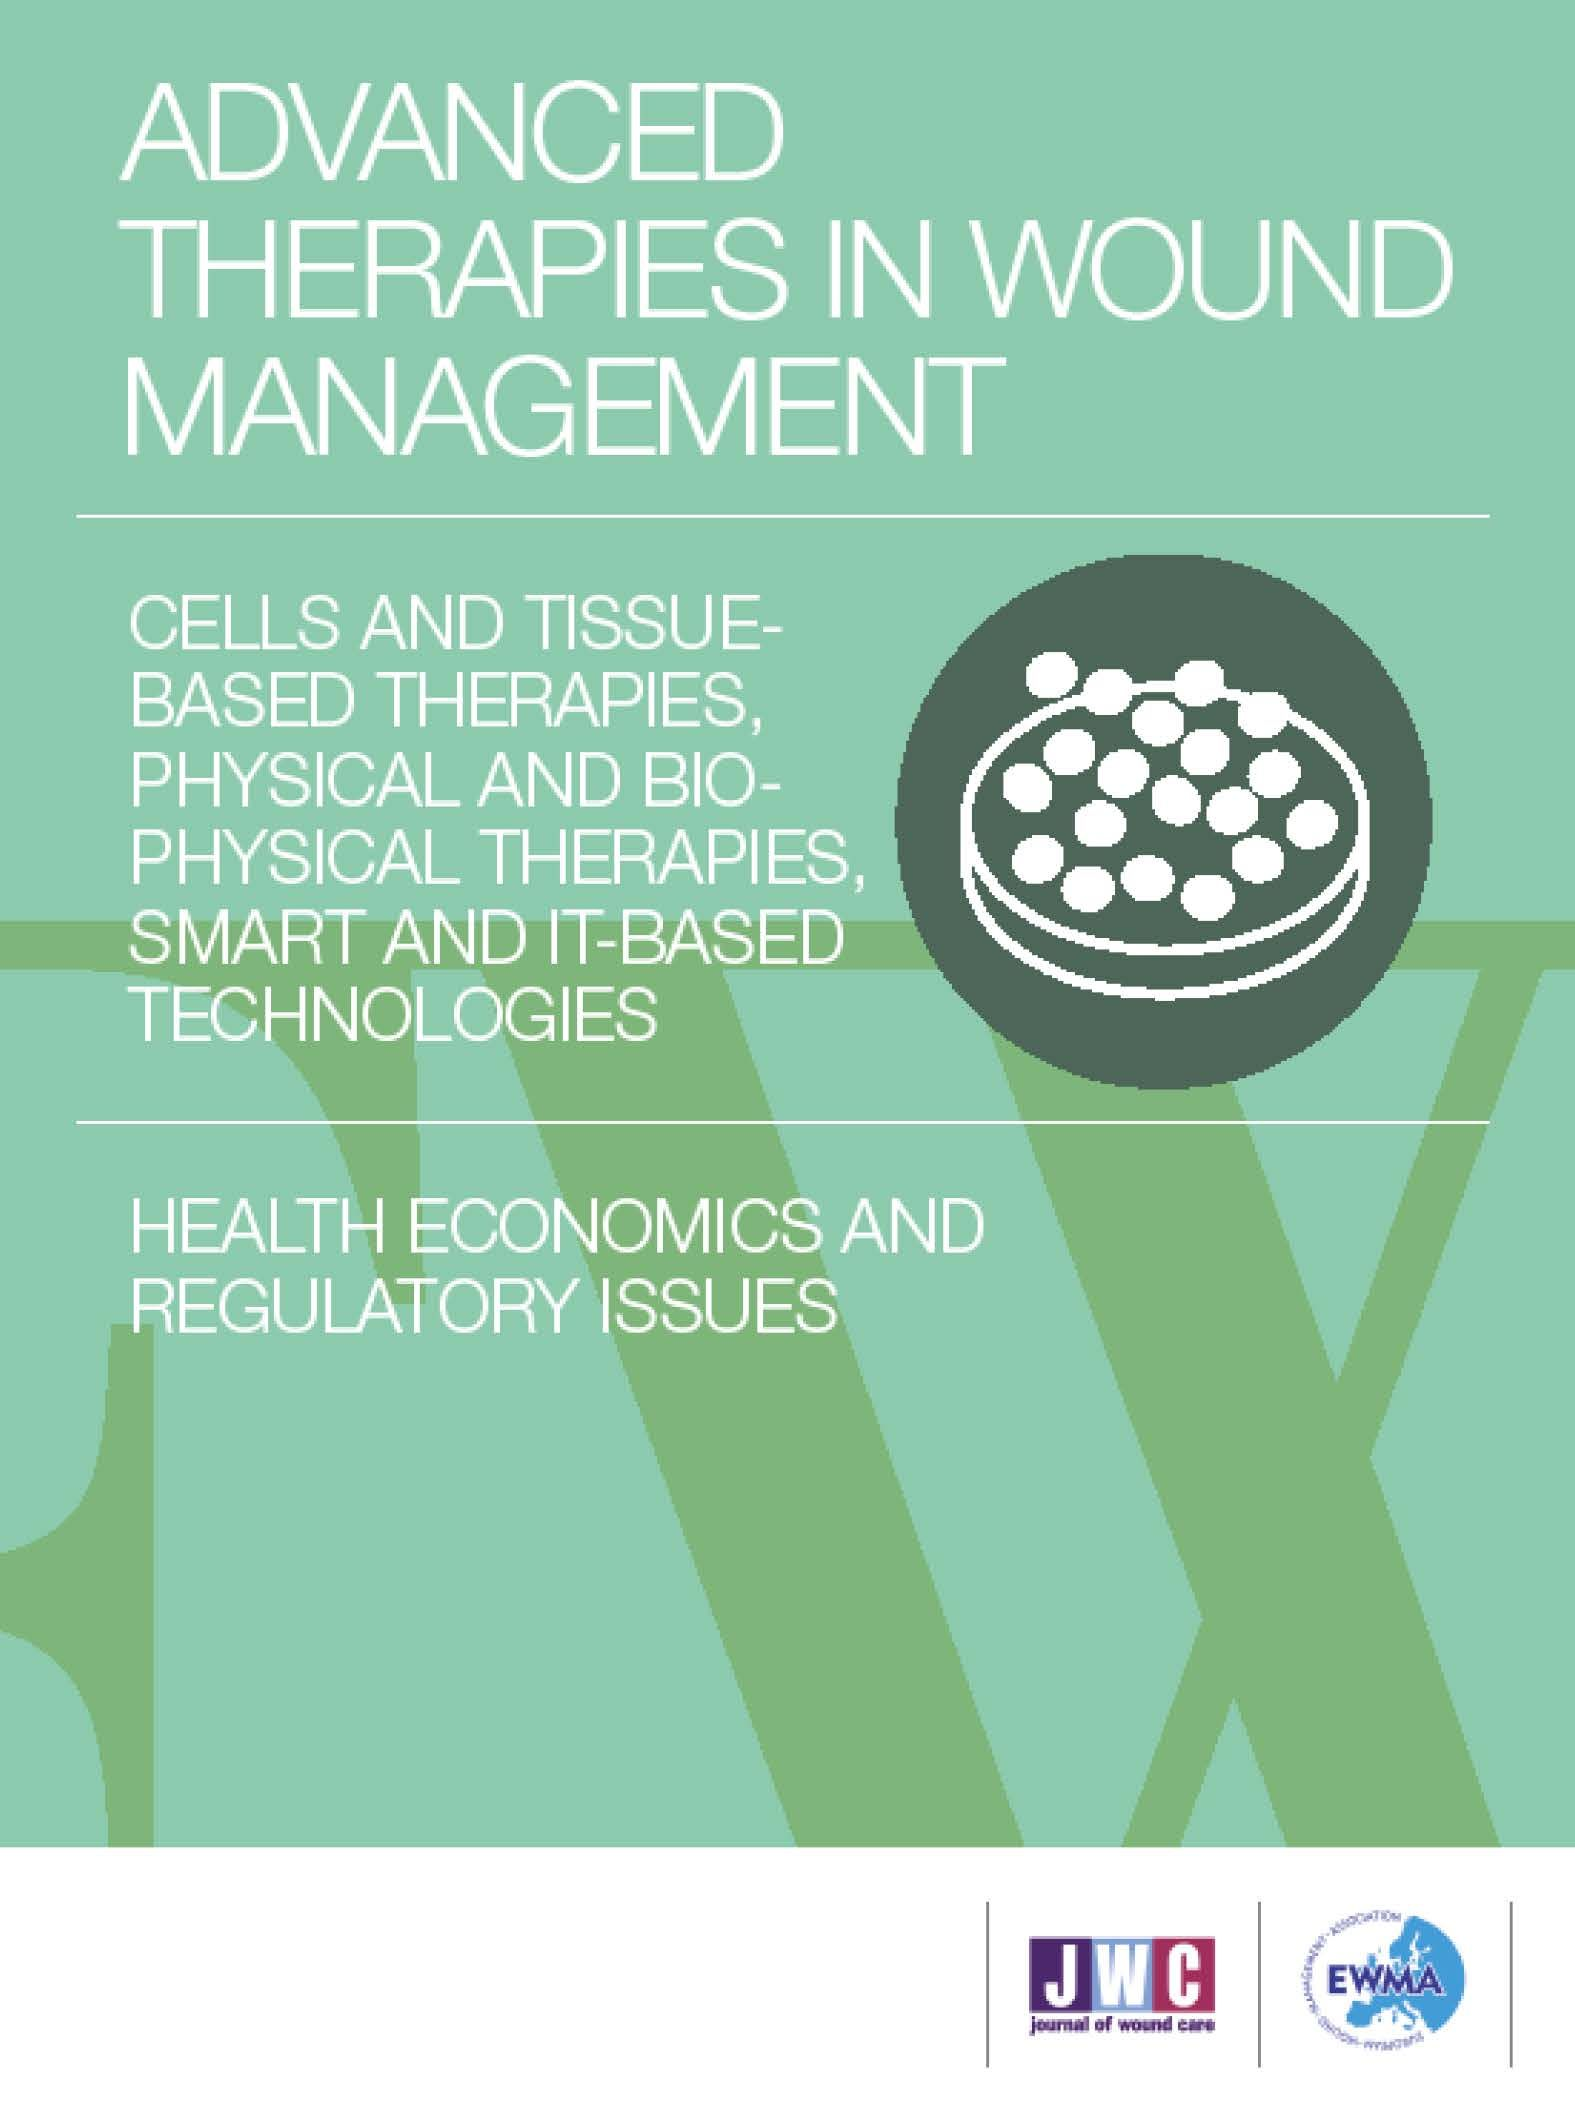 Front_page_Advanced_therapies_in_Wound_Management.jpg